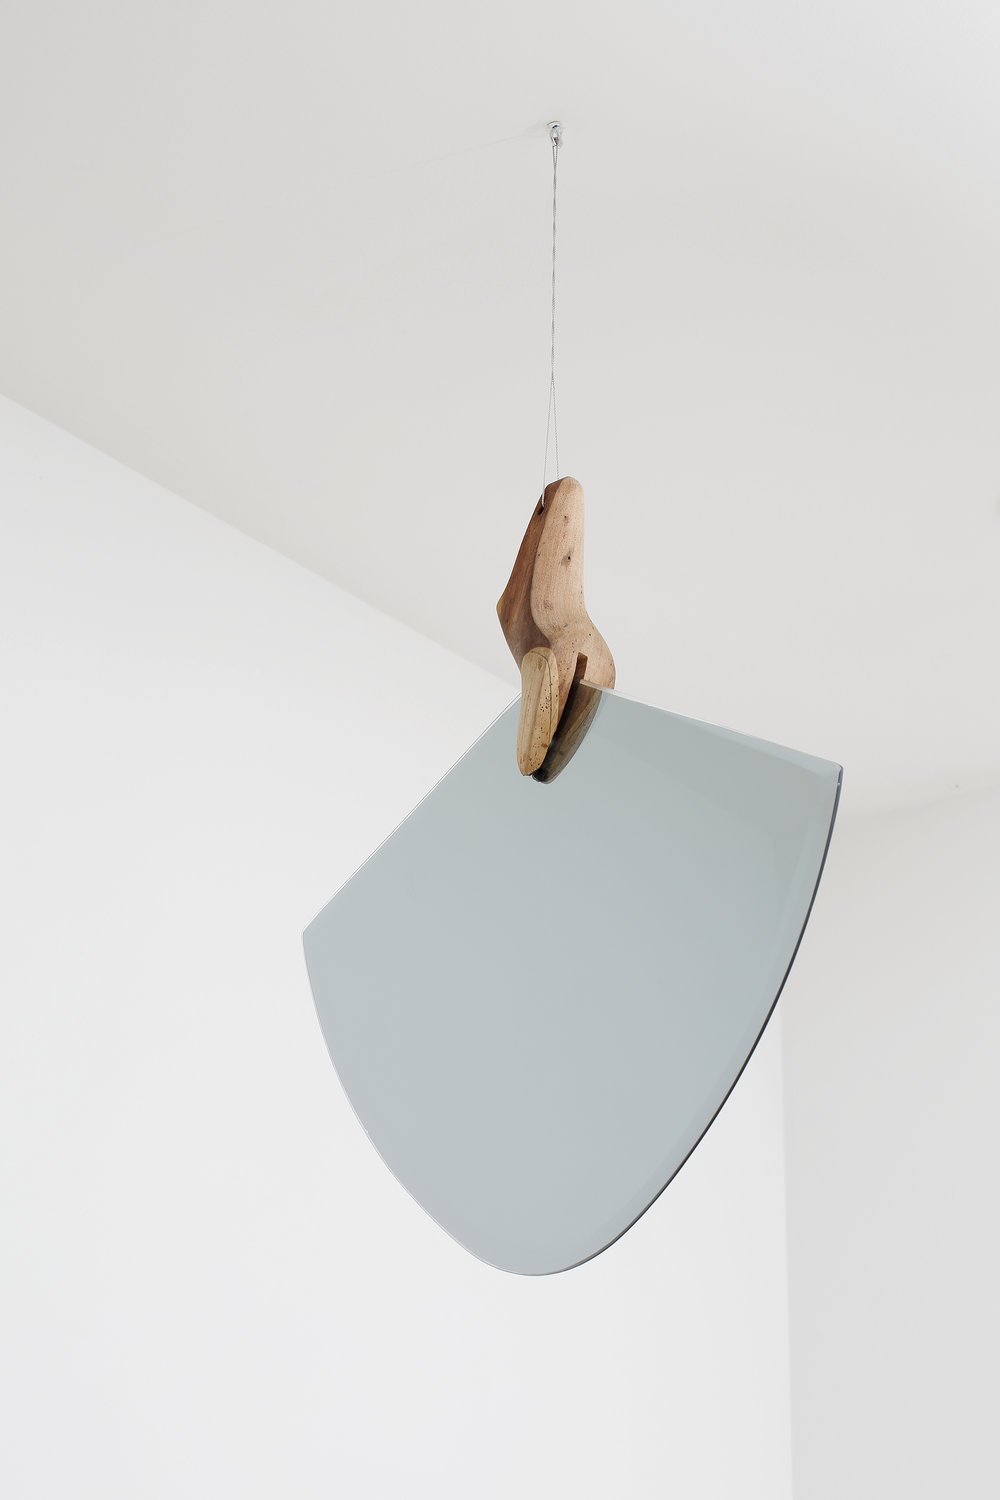 Omar Barquet ,  Pendular (Para C. Brancusi) , 2015,  modified mirror, carved and painted wooden shoe mold, thread